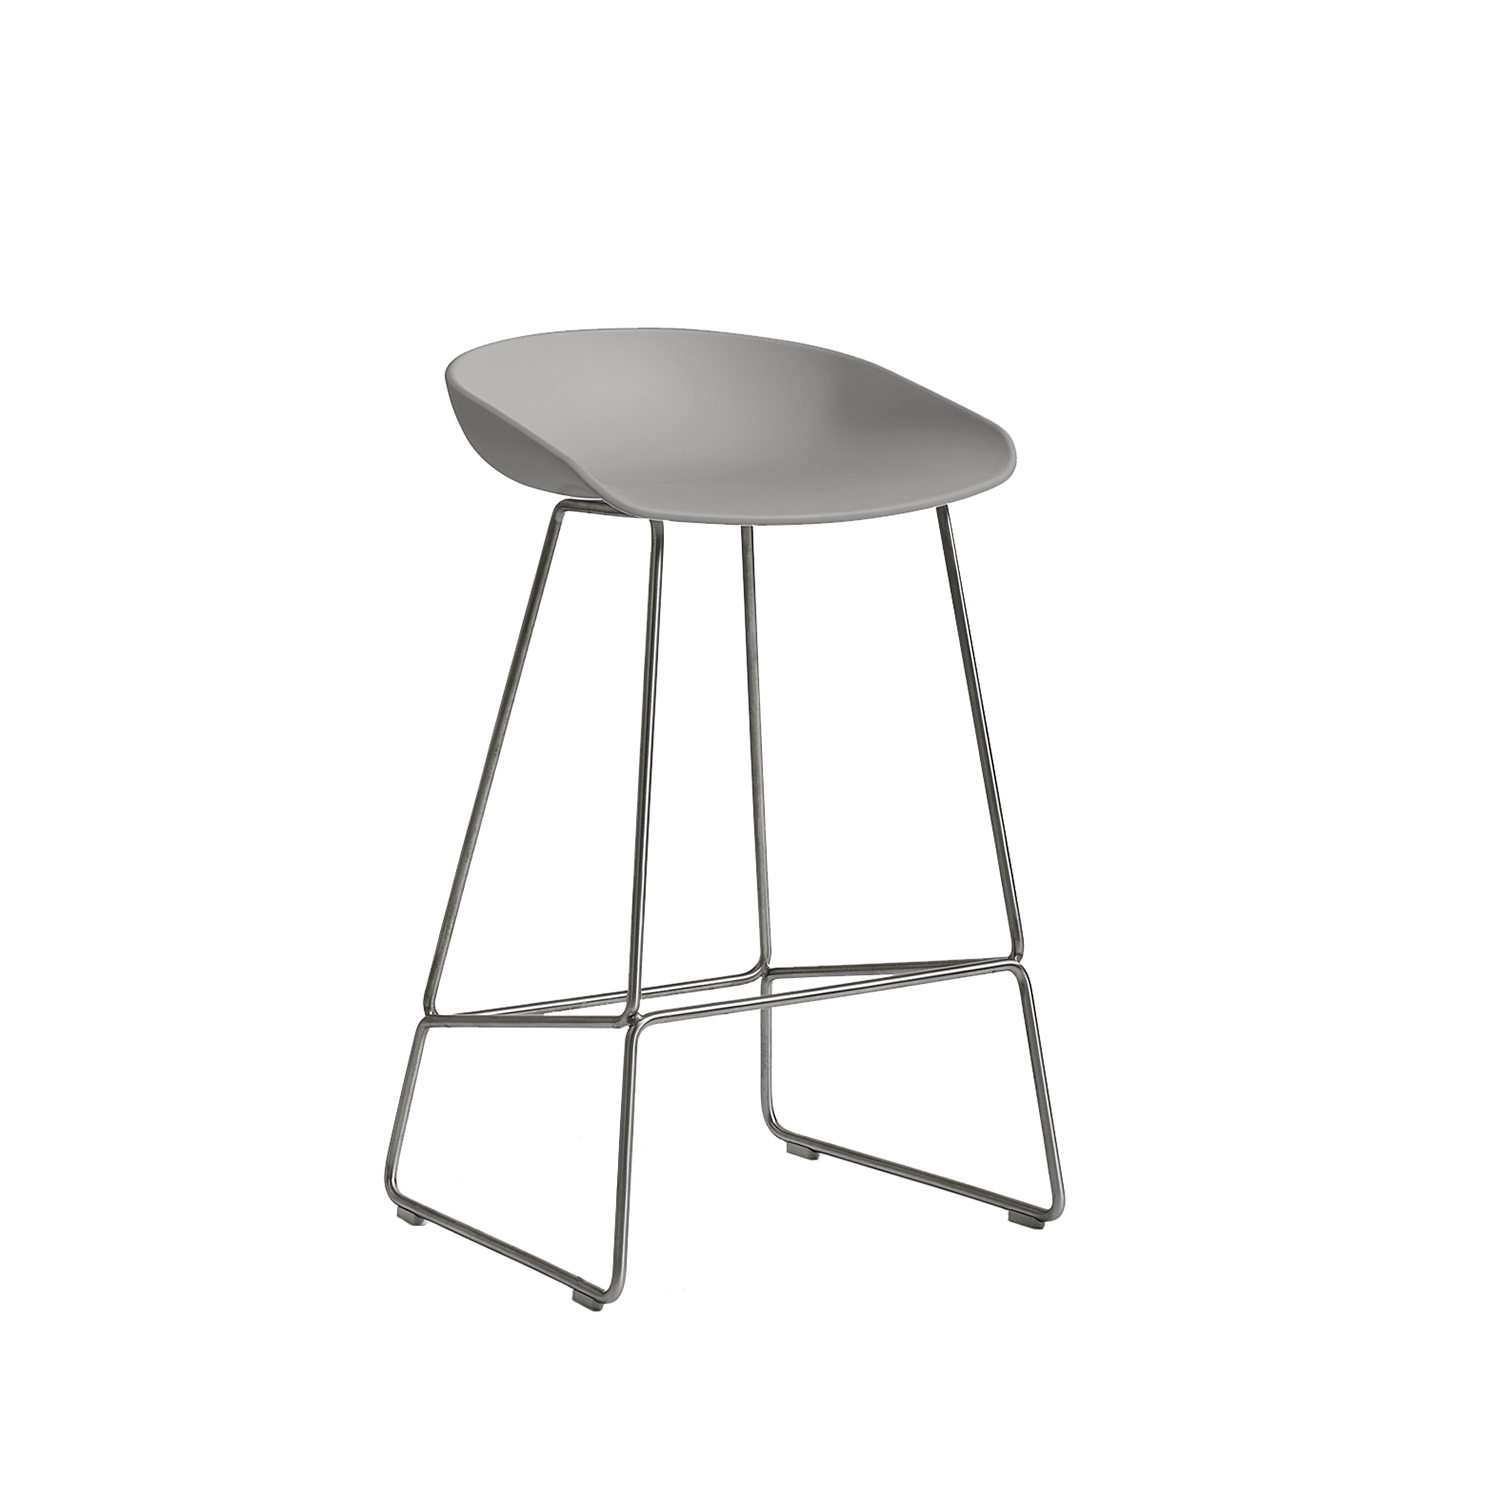 Hay-About A Stool 38 Barstol H65, Varm Rød/Rustfrit